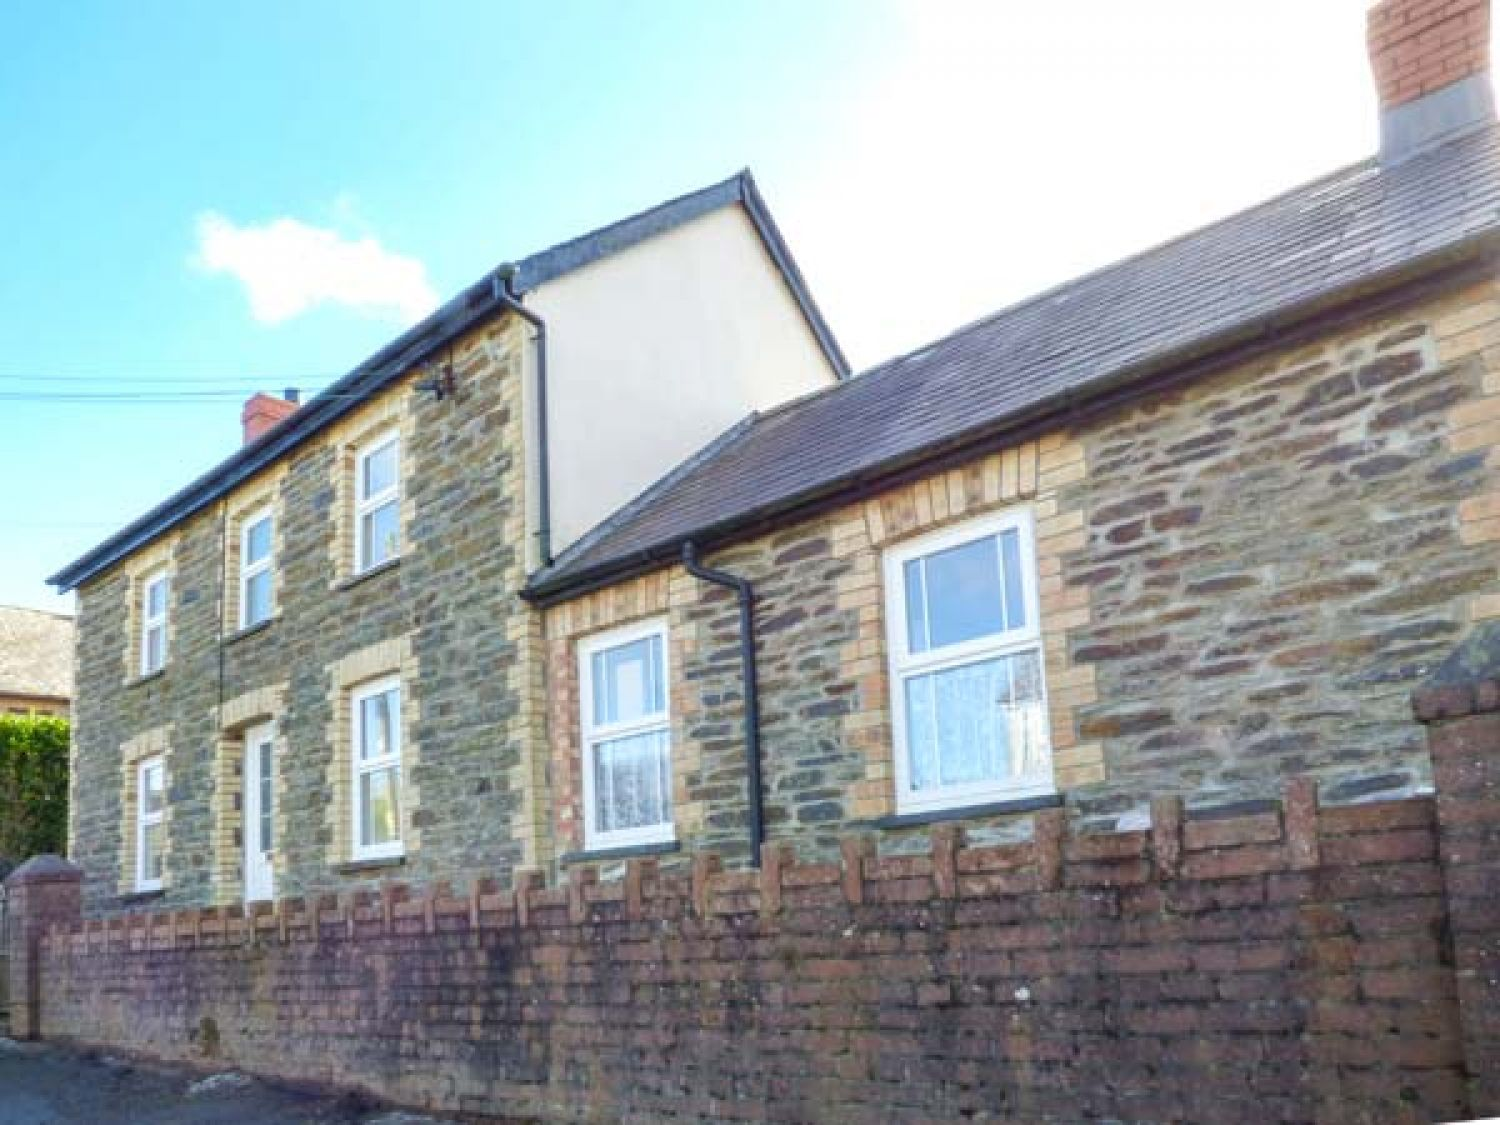 Cozy Cwtch Cottage - South Wales - 935330 - photo 1